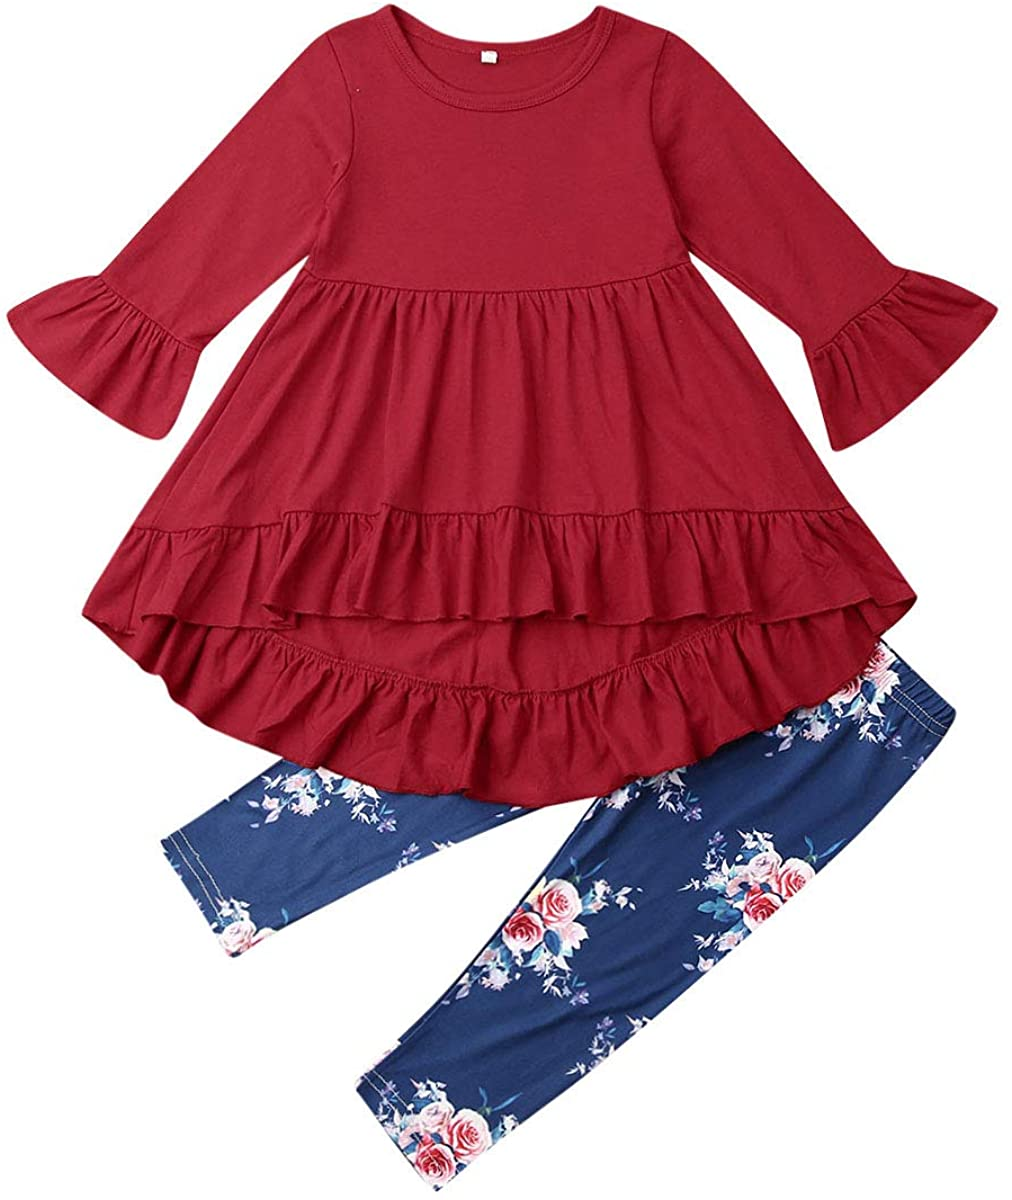 2Pcs Kids Toddler Baby Girl Long Sleeve T-Shirt Tops+Floral Pants Outfit Set Fall Clothes (Wine Red+Floral, 5-6T)